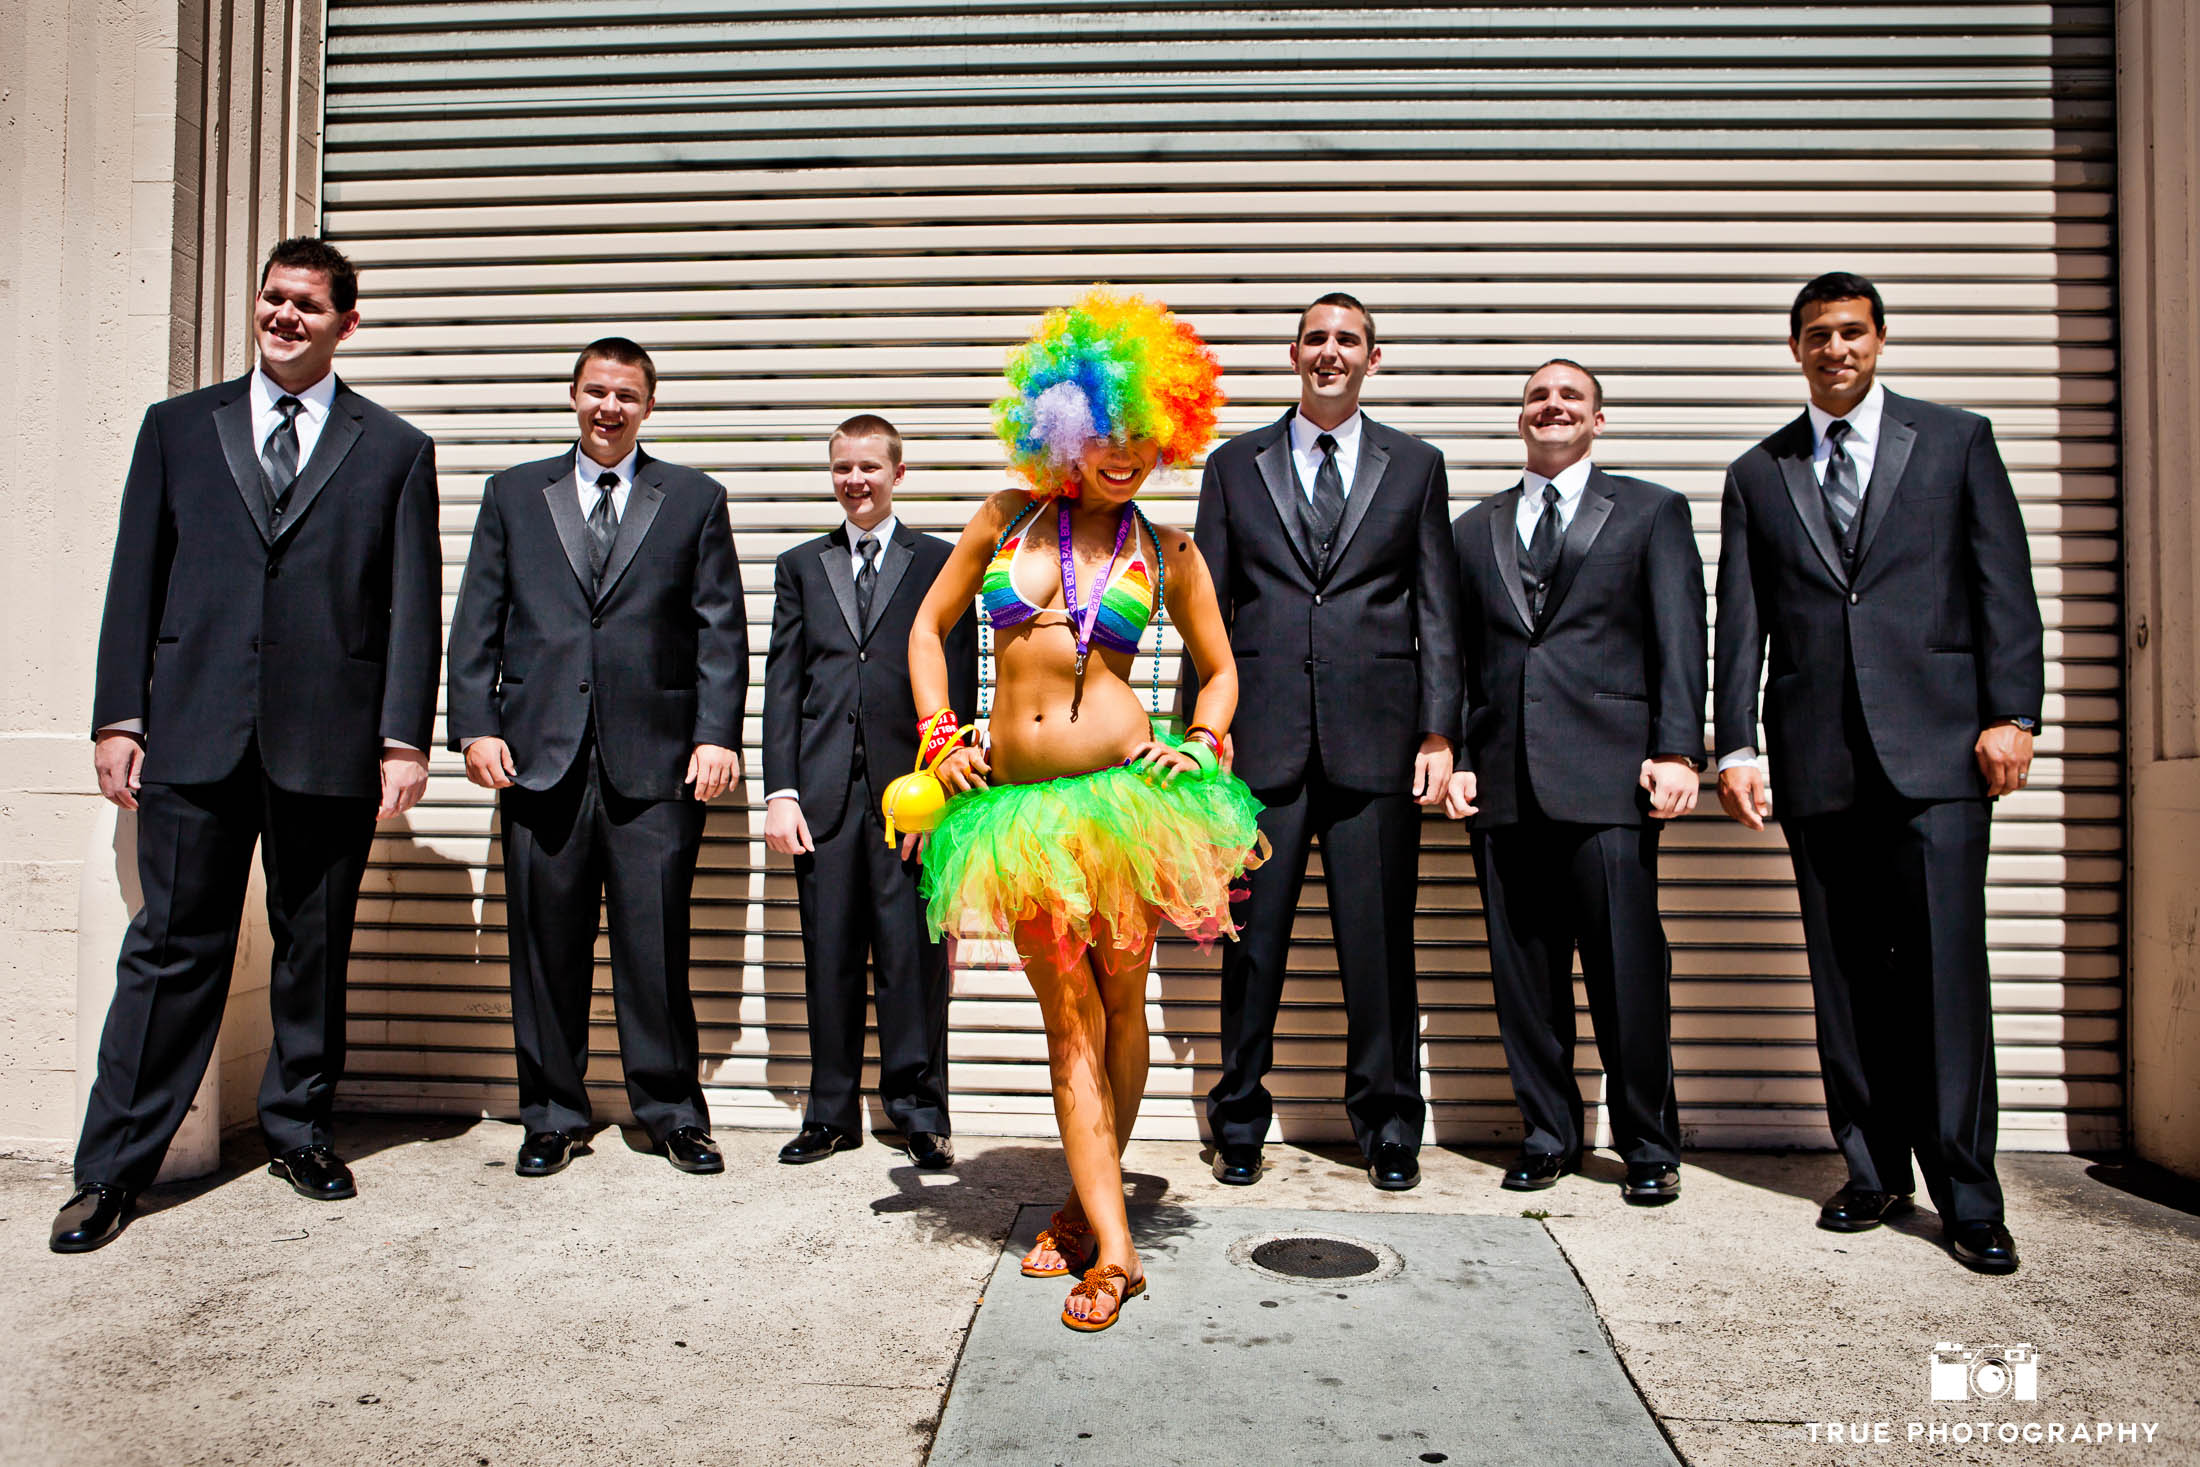 Groomsmen laugh behind colorful street performer